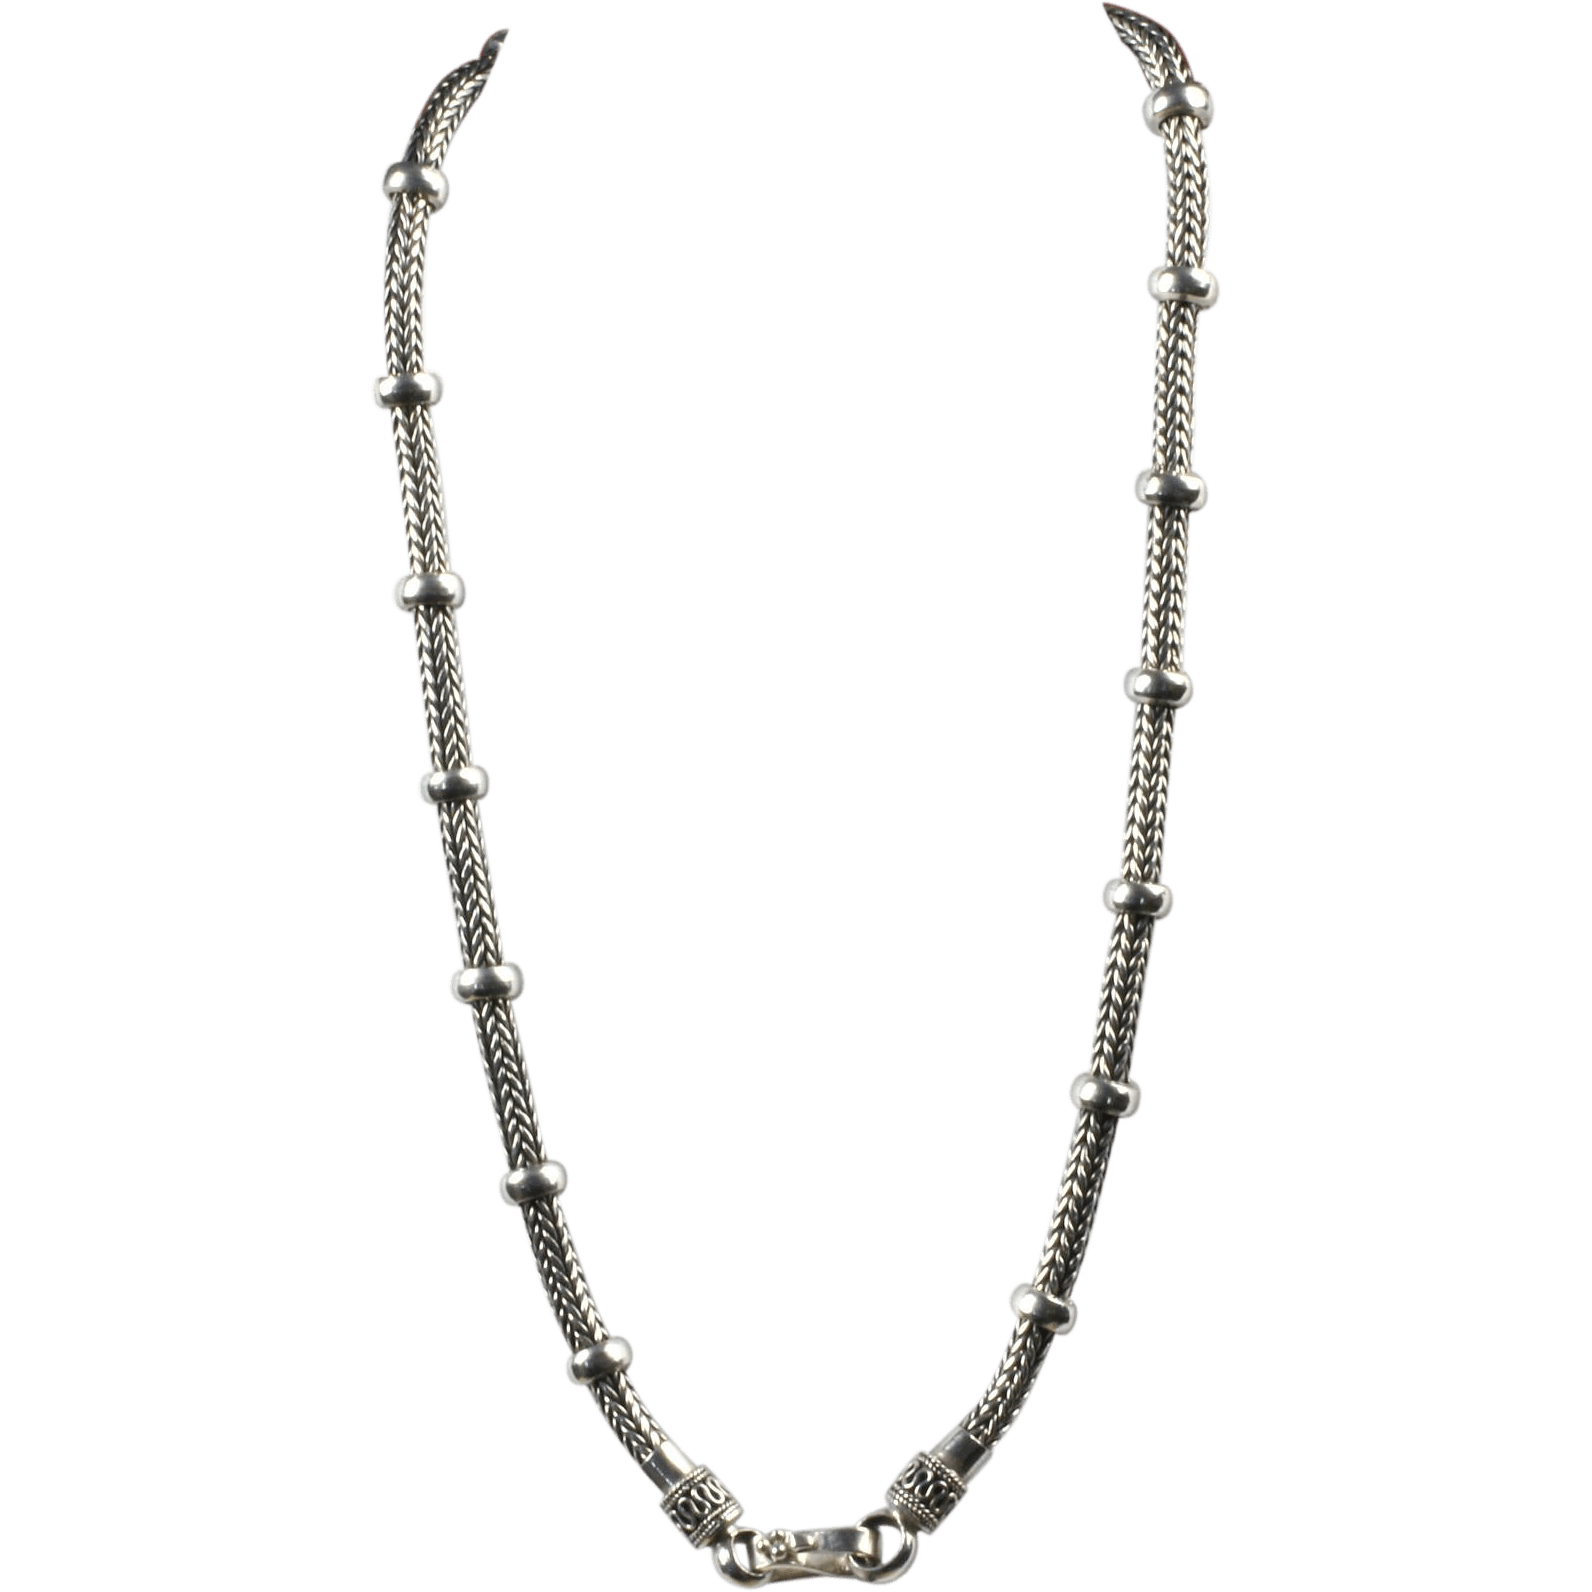 20 Inch Weave Sterling Necklace : Goodbee Collectables